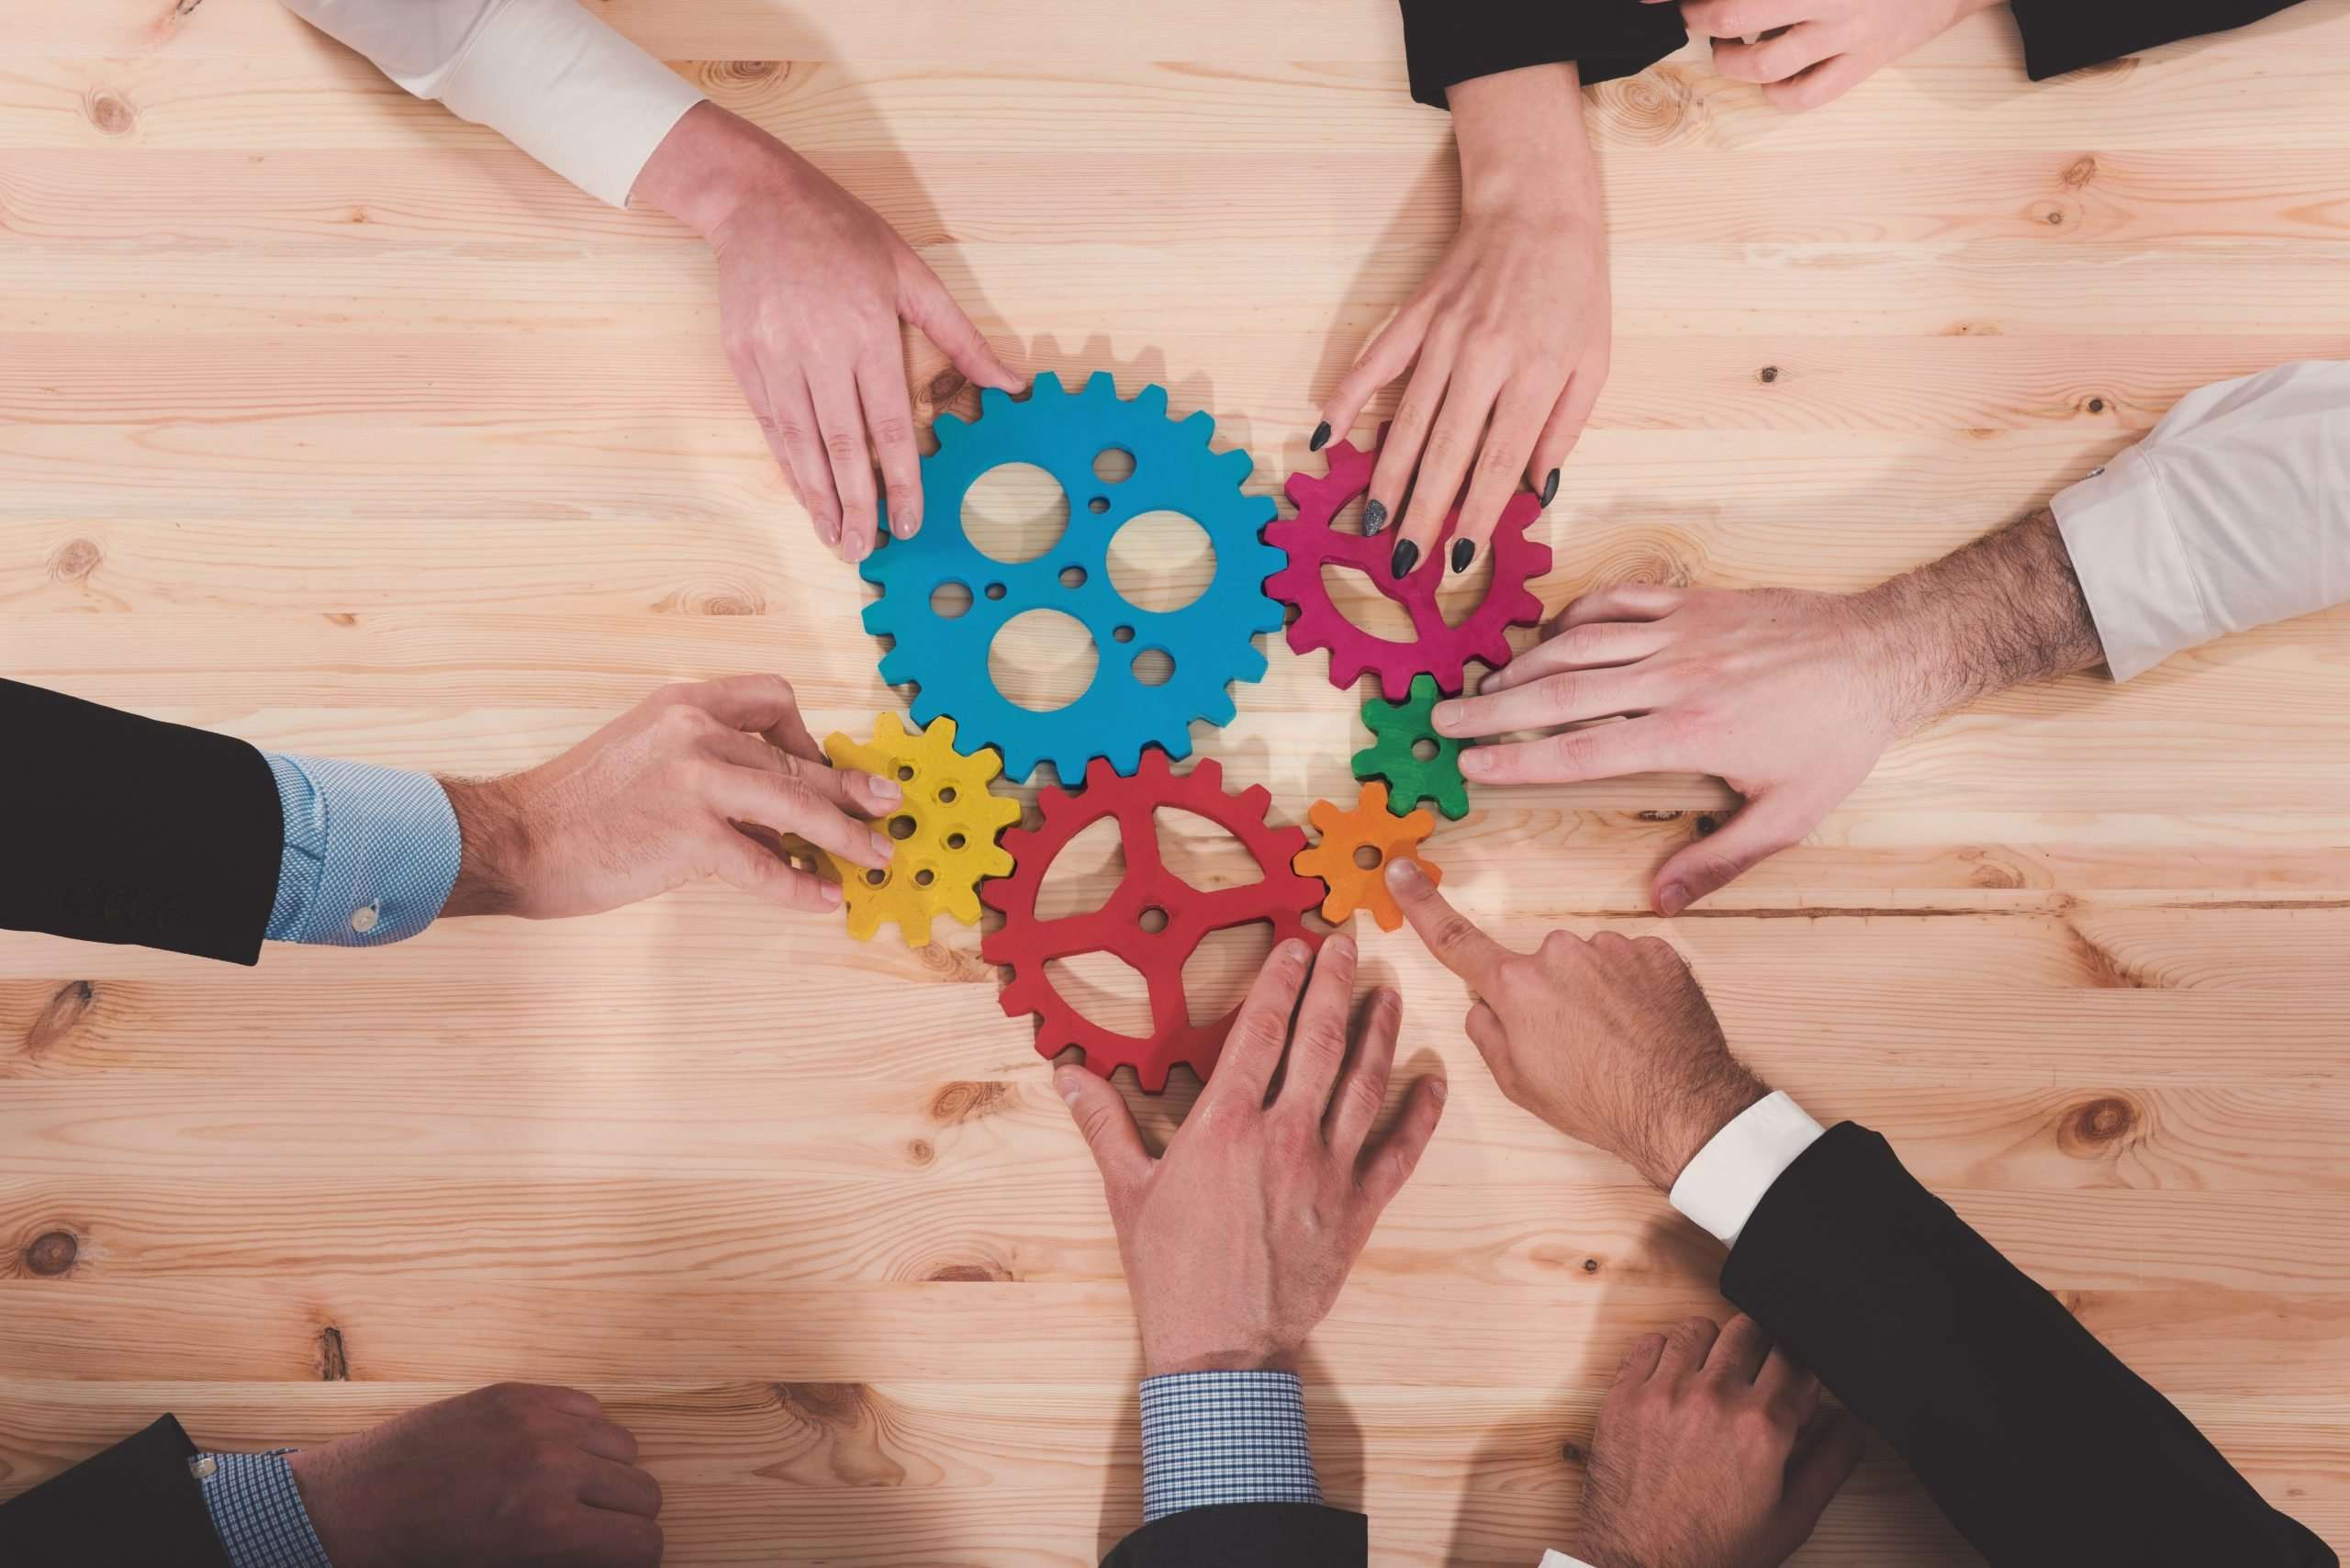 How to build an integrated service into your business